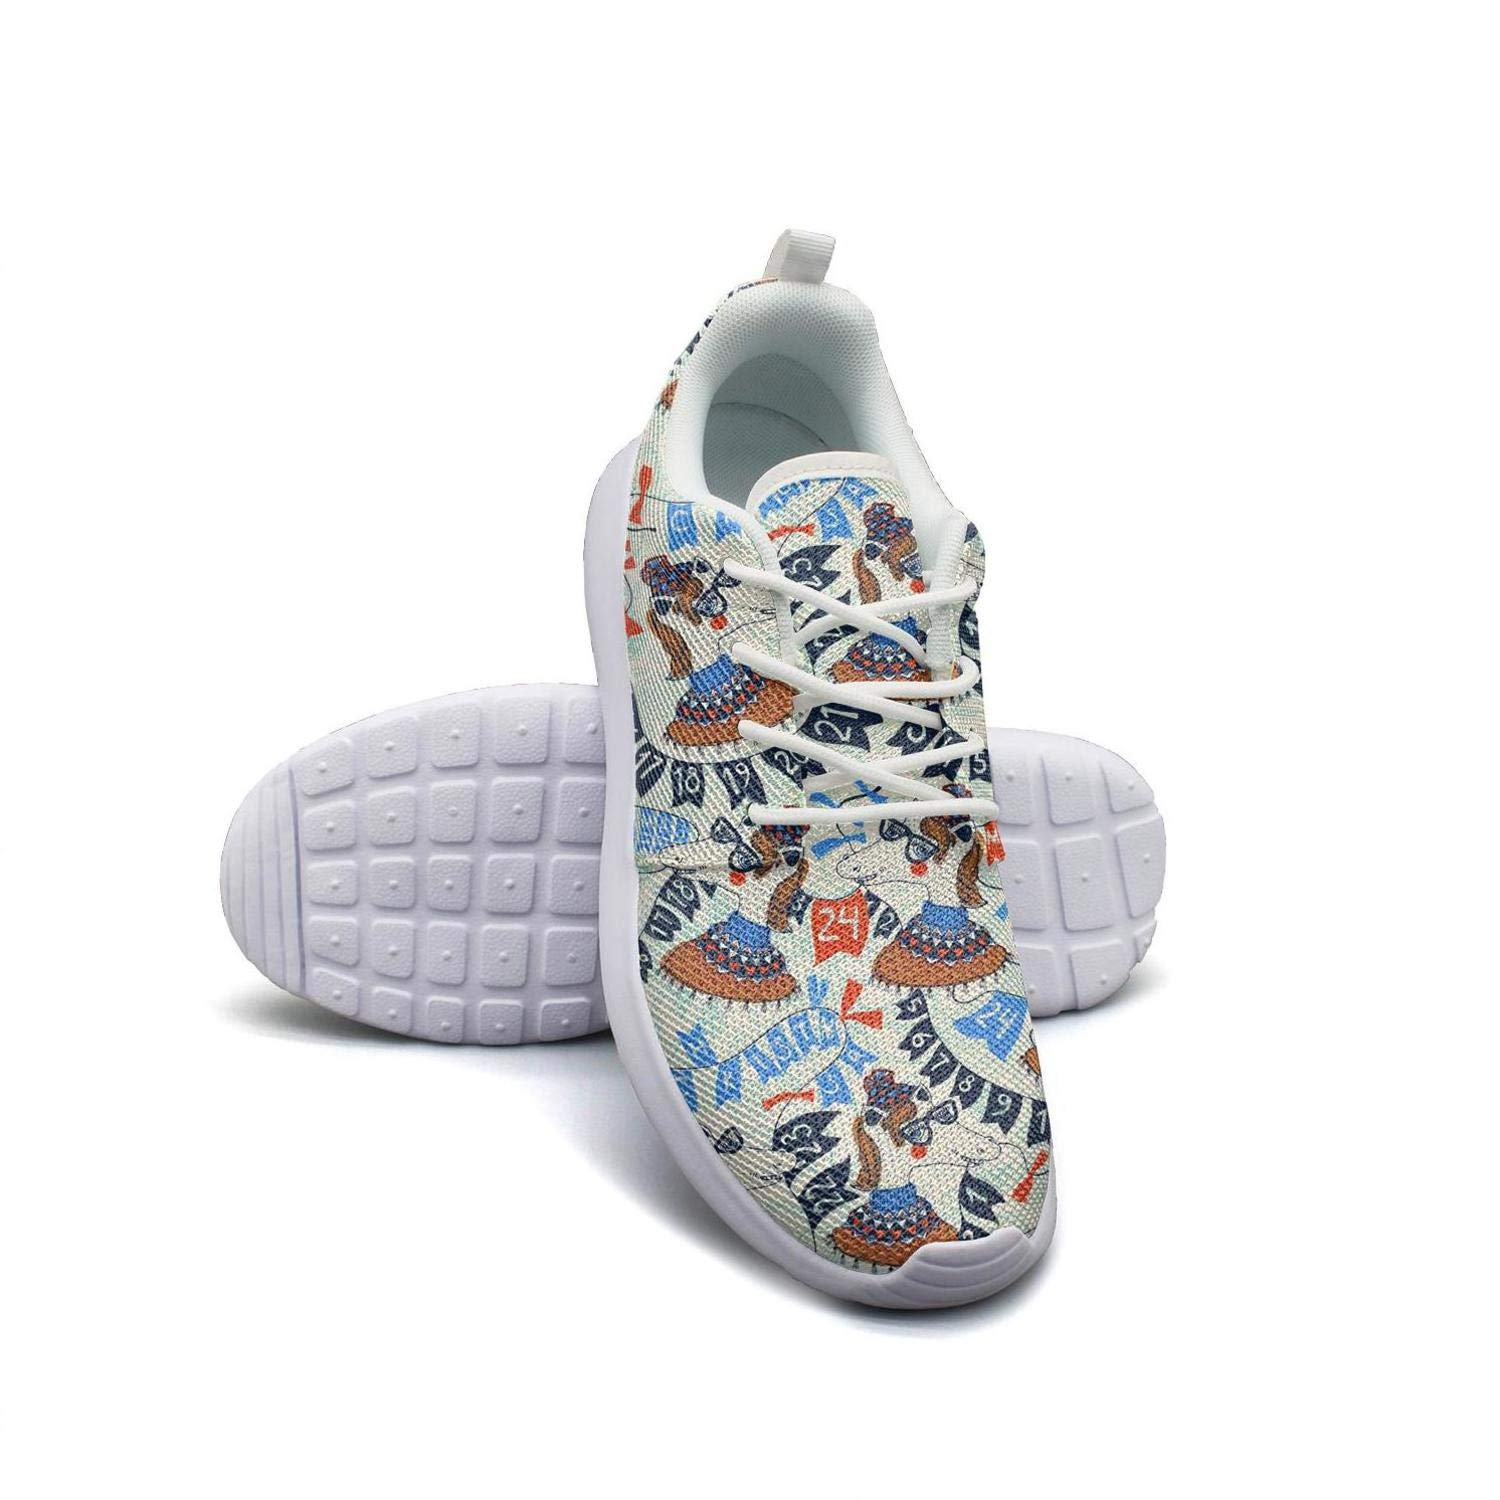 LOKIJM Merry Christmas Horse with Glasses Digital White Gym Shoes for Women News Wear-Resistant Running Shoes